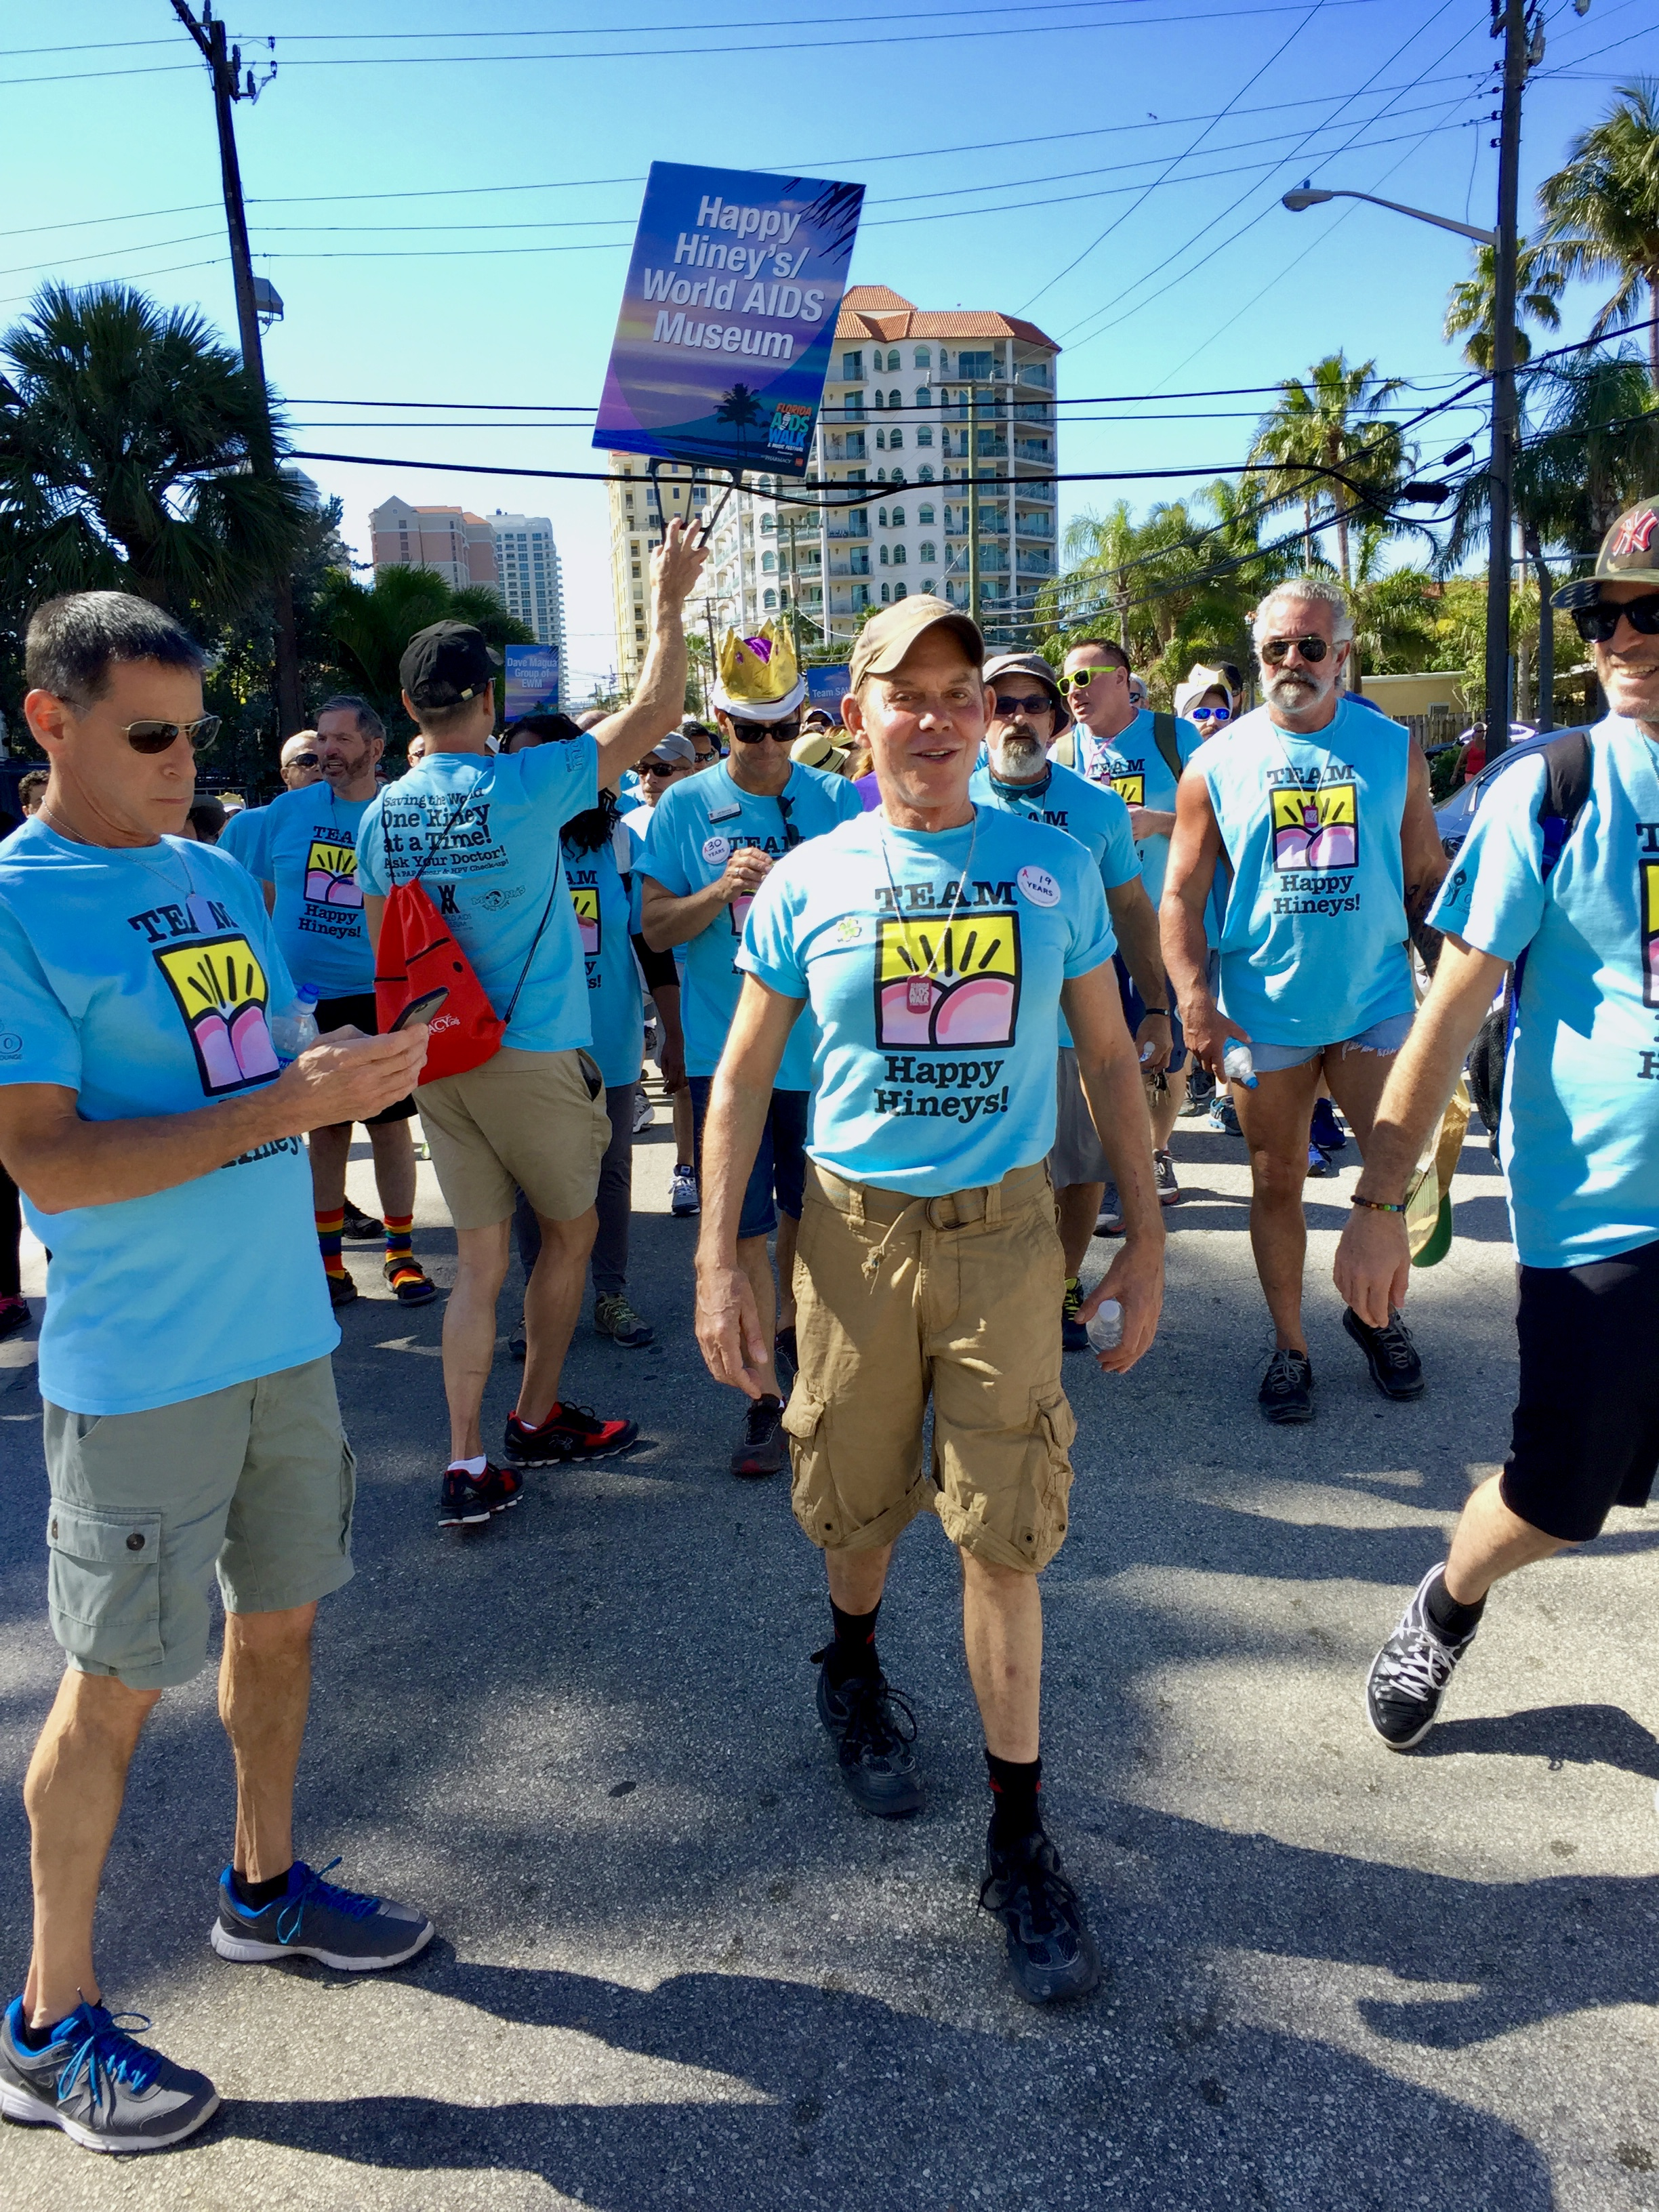 2017 Florida AIDS Walk WAM and Happy Hineys 5